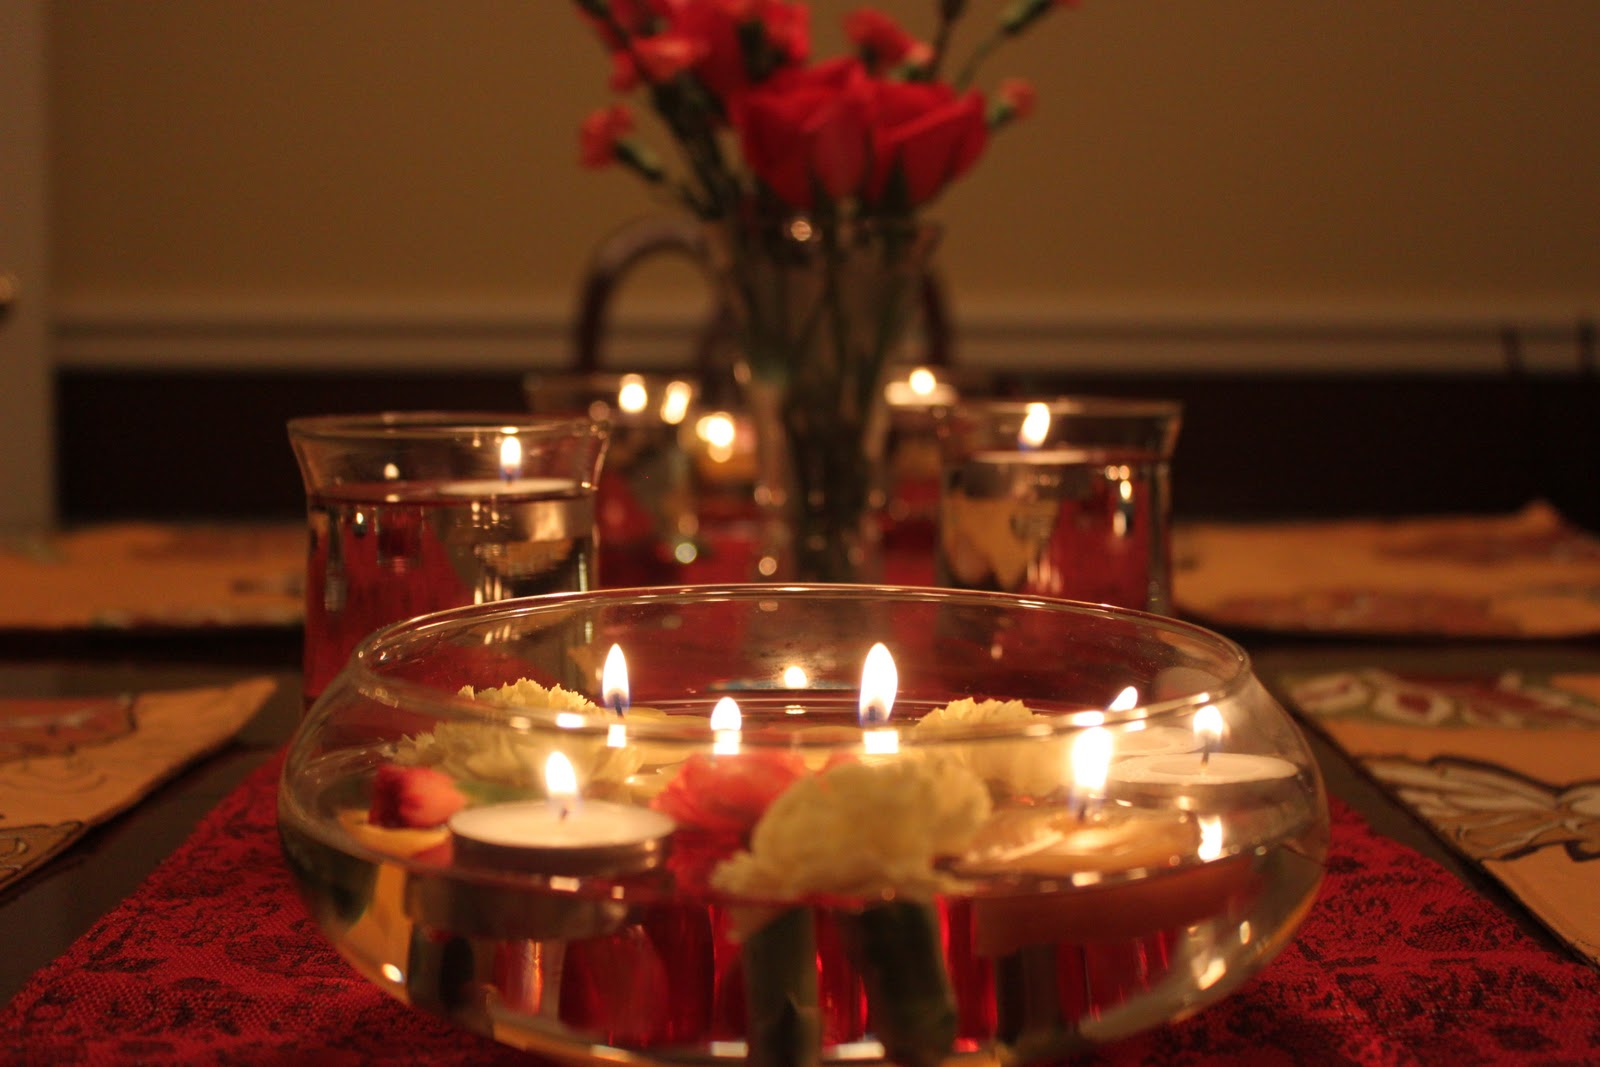 cann-din-7-floating-candles-romantic-dinner